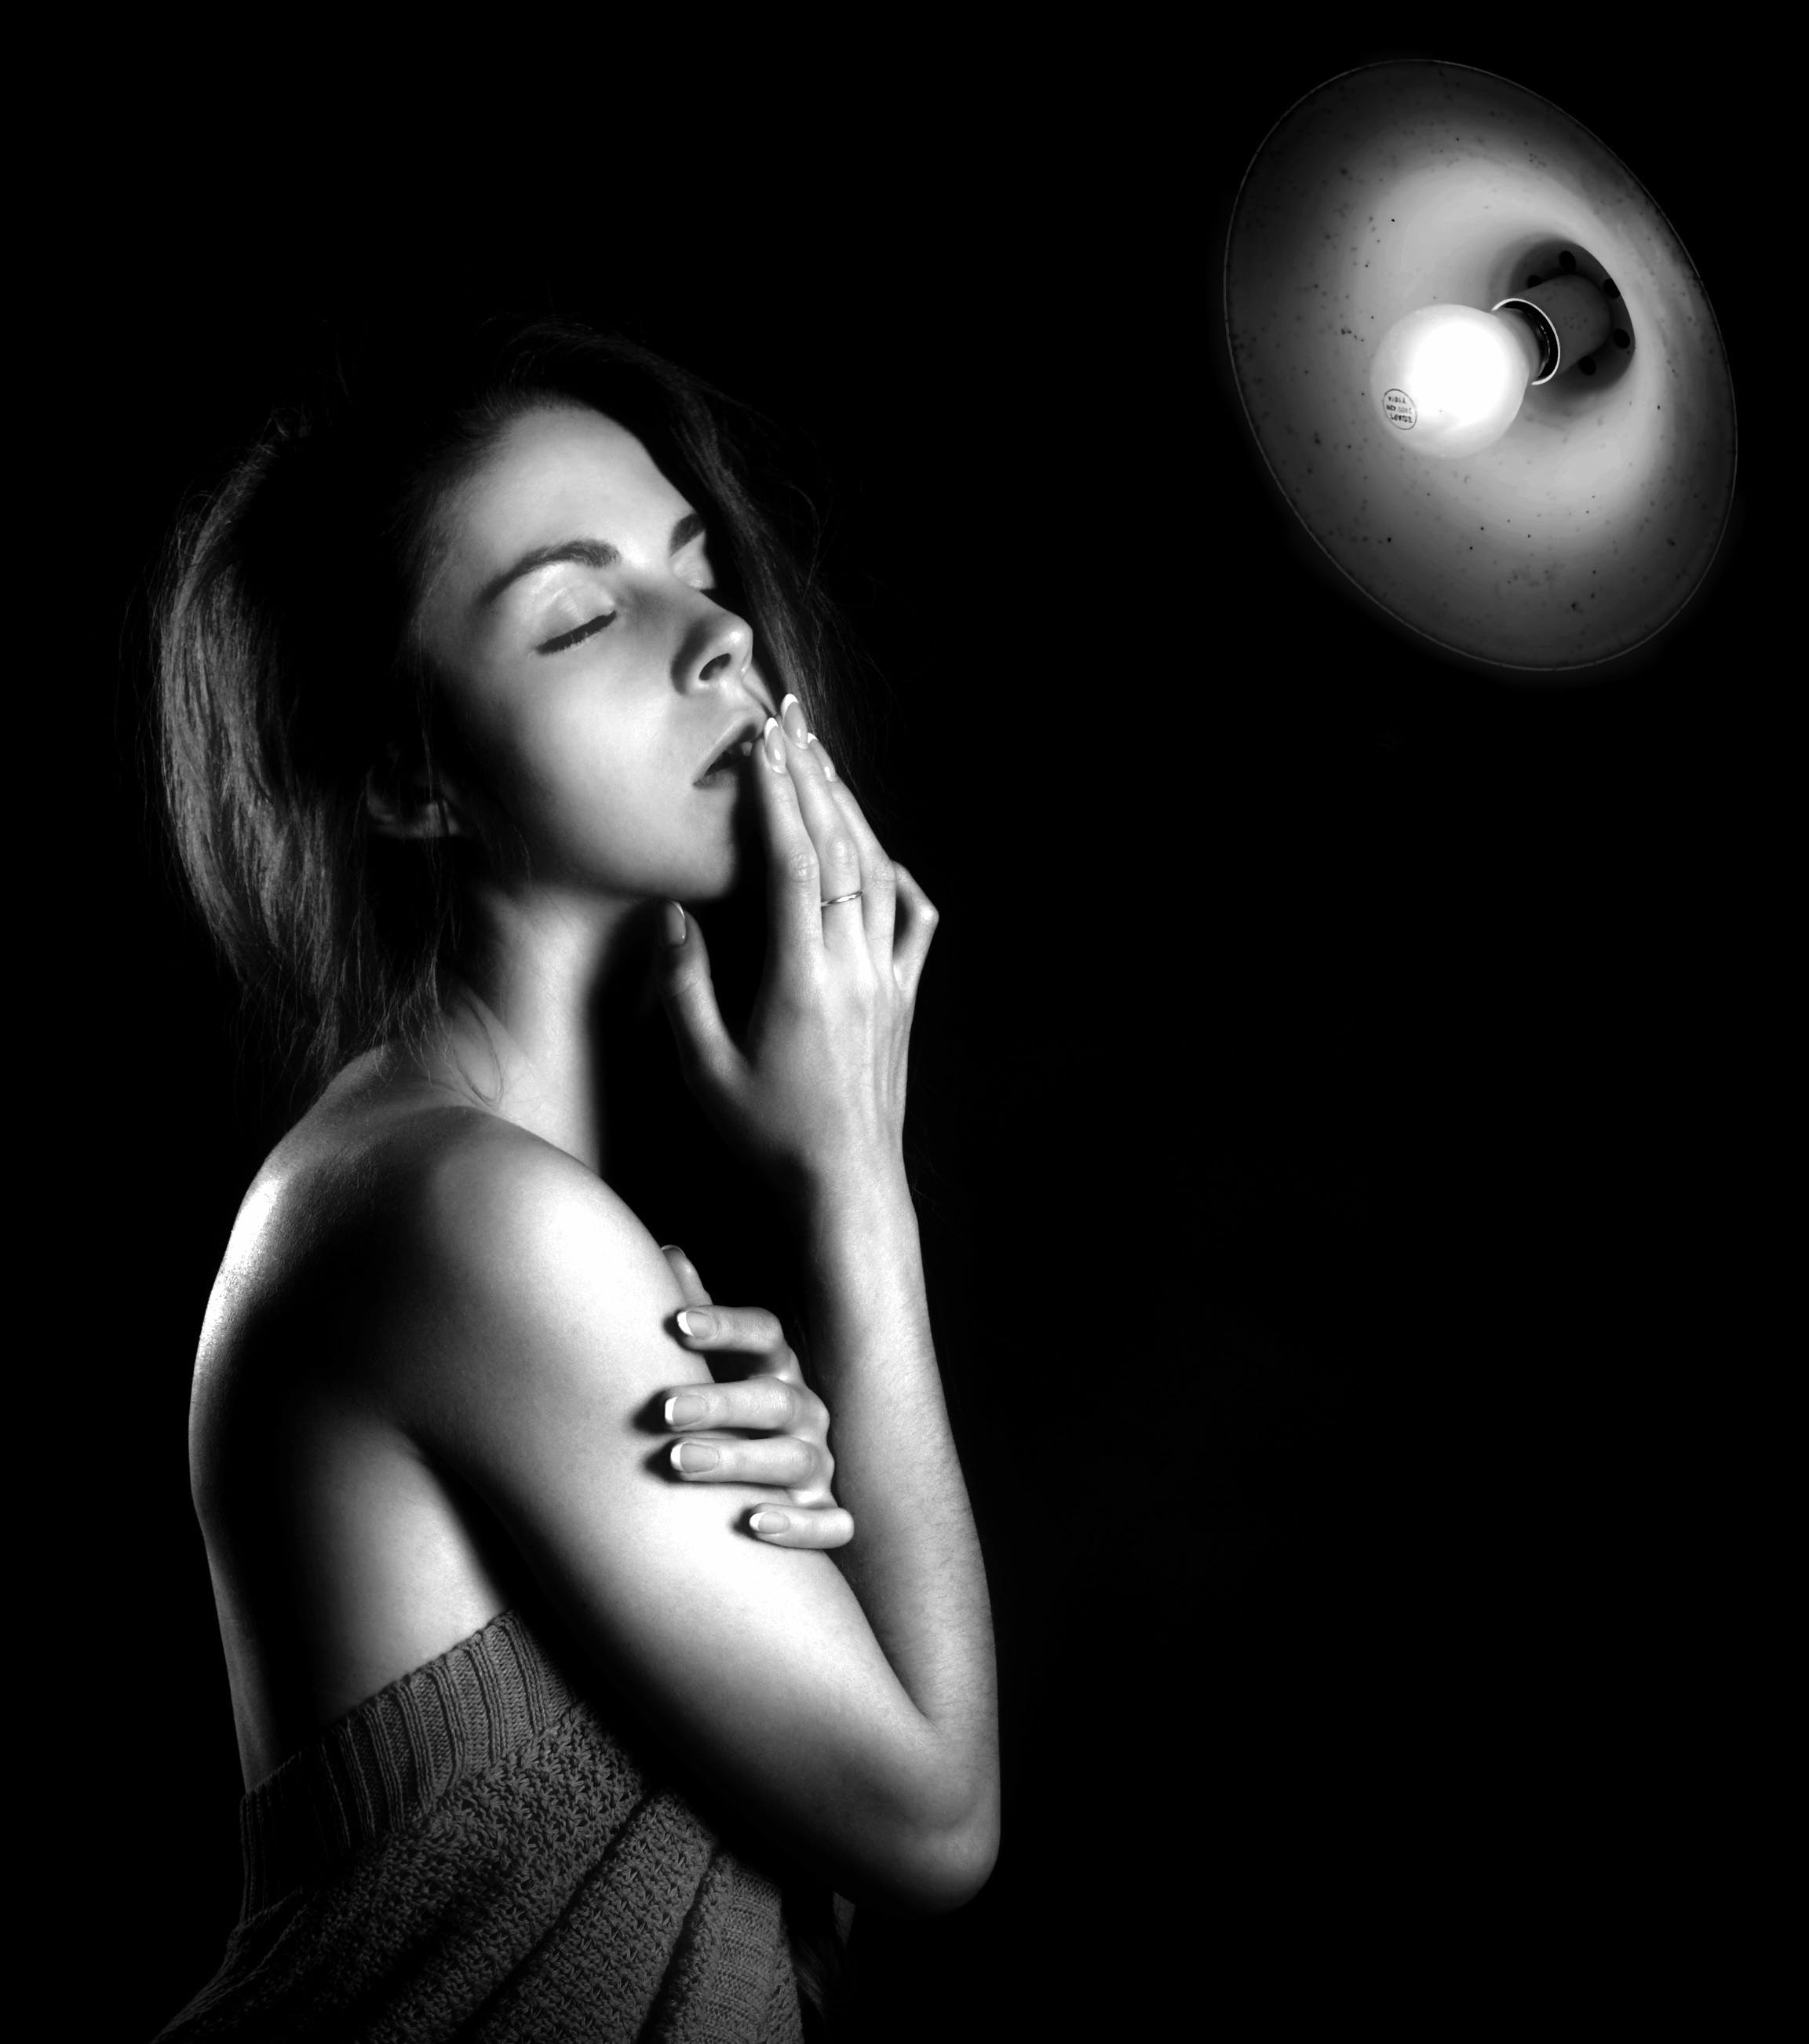 Grayscale Photography of Woman Holding Her Mouth in Front of Bulb Light